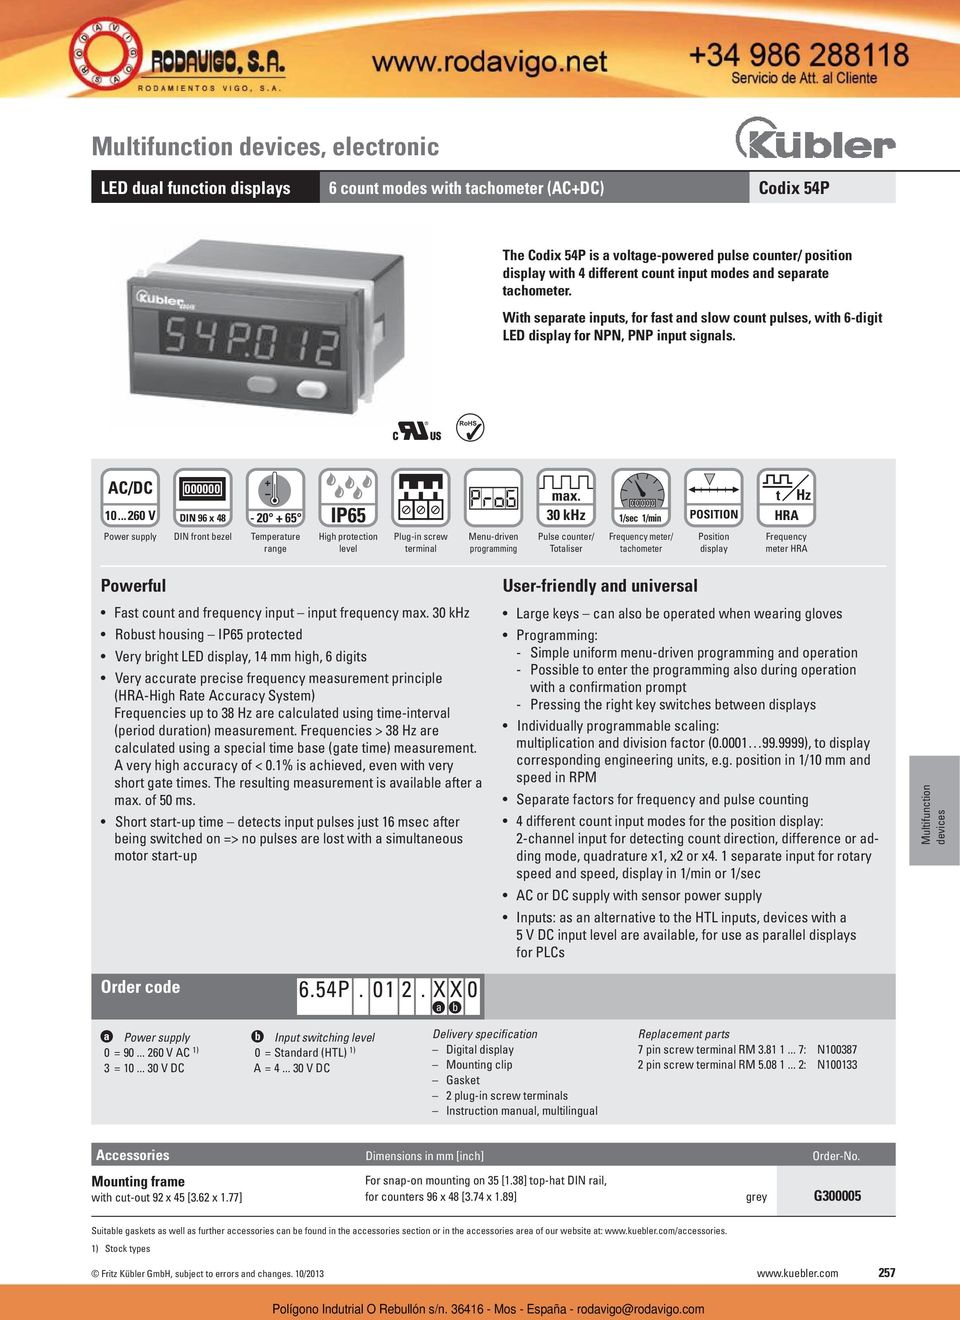 ..260 V DIN 96 x 48 Power supply DIN front bezel - 20 + 65 Temperature range IP65 High protection level terminal programming max.